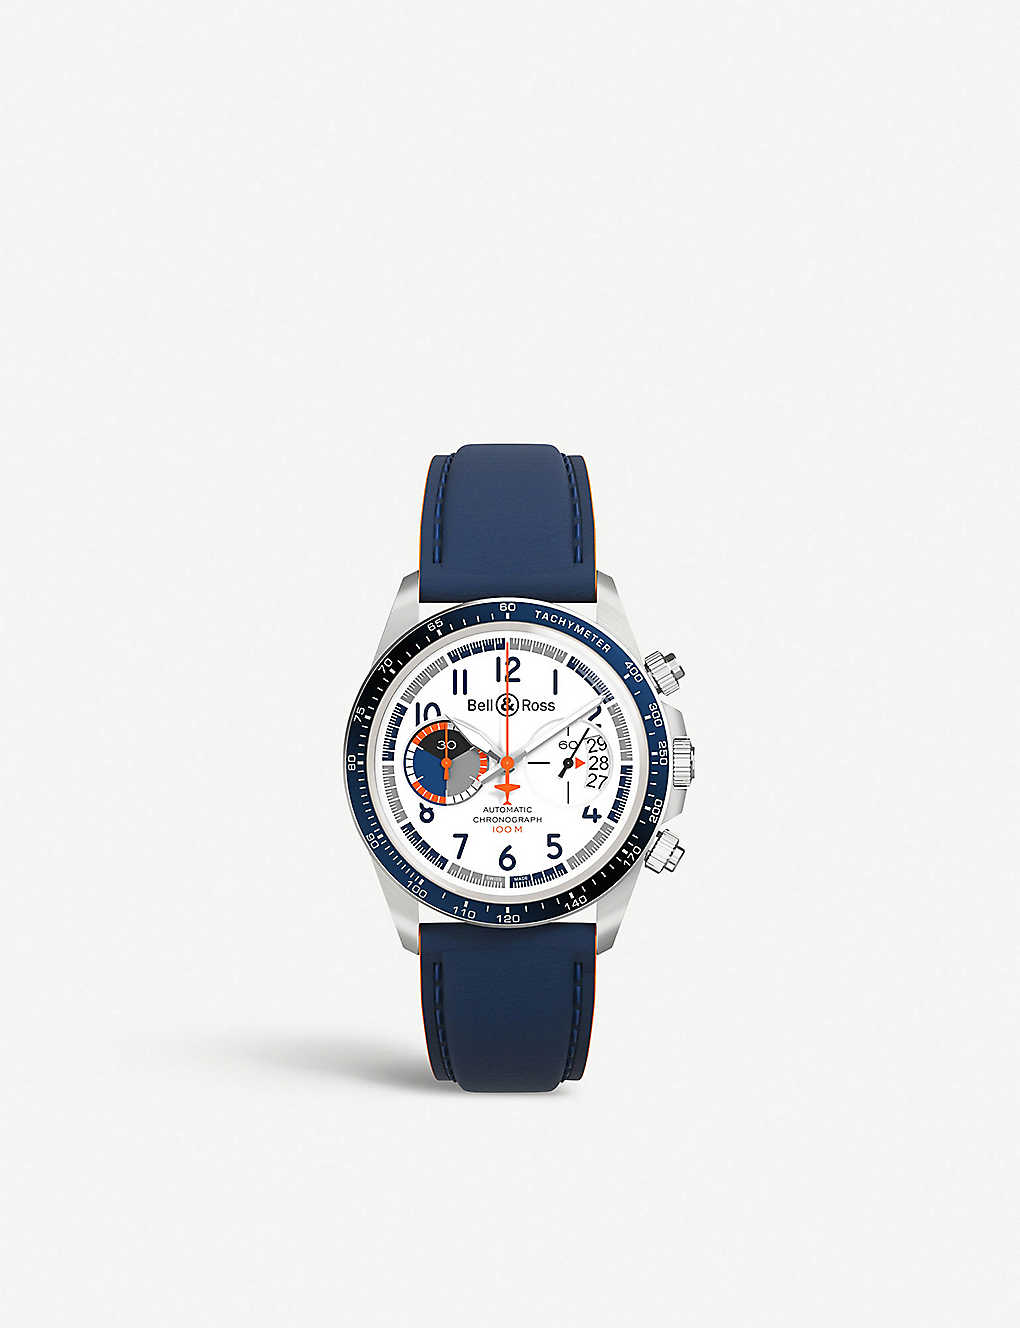 b902a0033 BR V2-94 Racing Bird stainless steel and leather chronograph watch ...